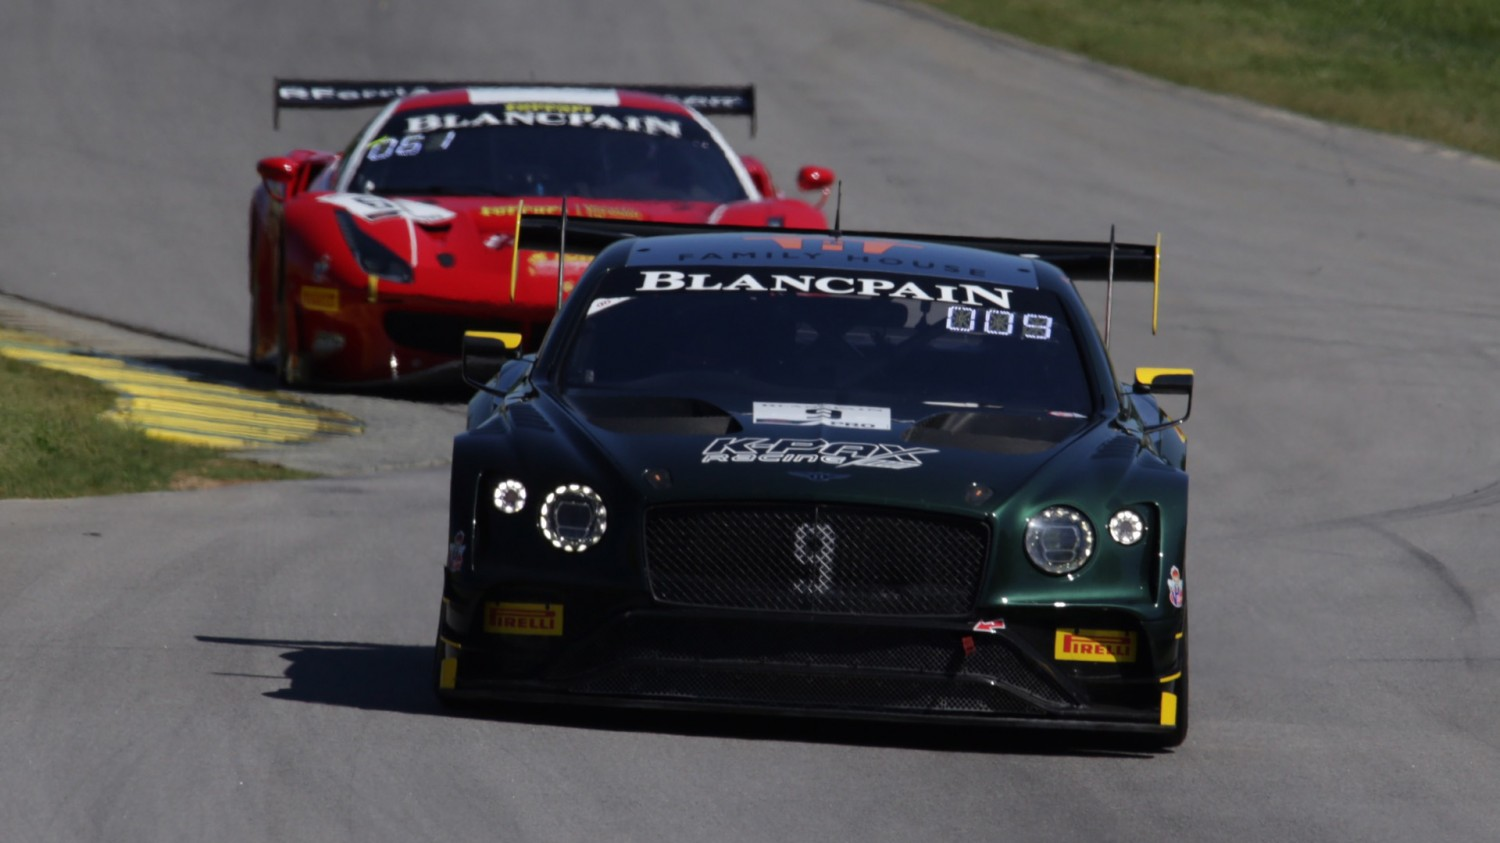 K-PAX Bentley Scores Double VIR Pole in Two Tight Qualifying Sessions